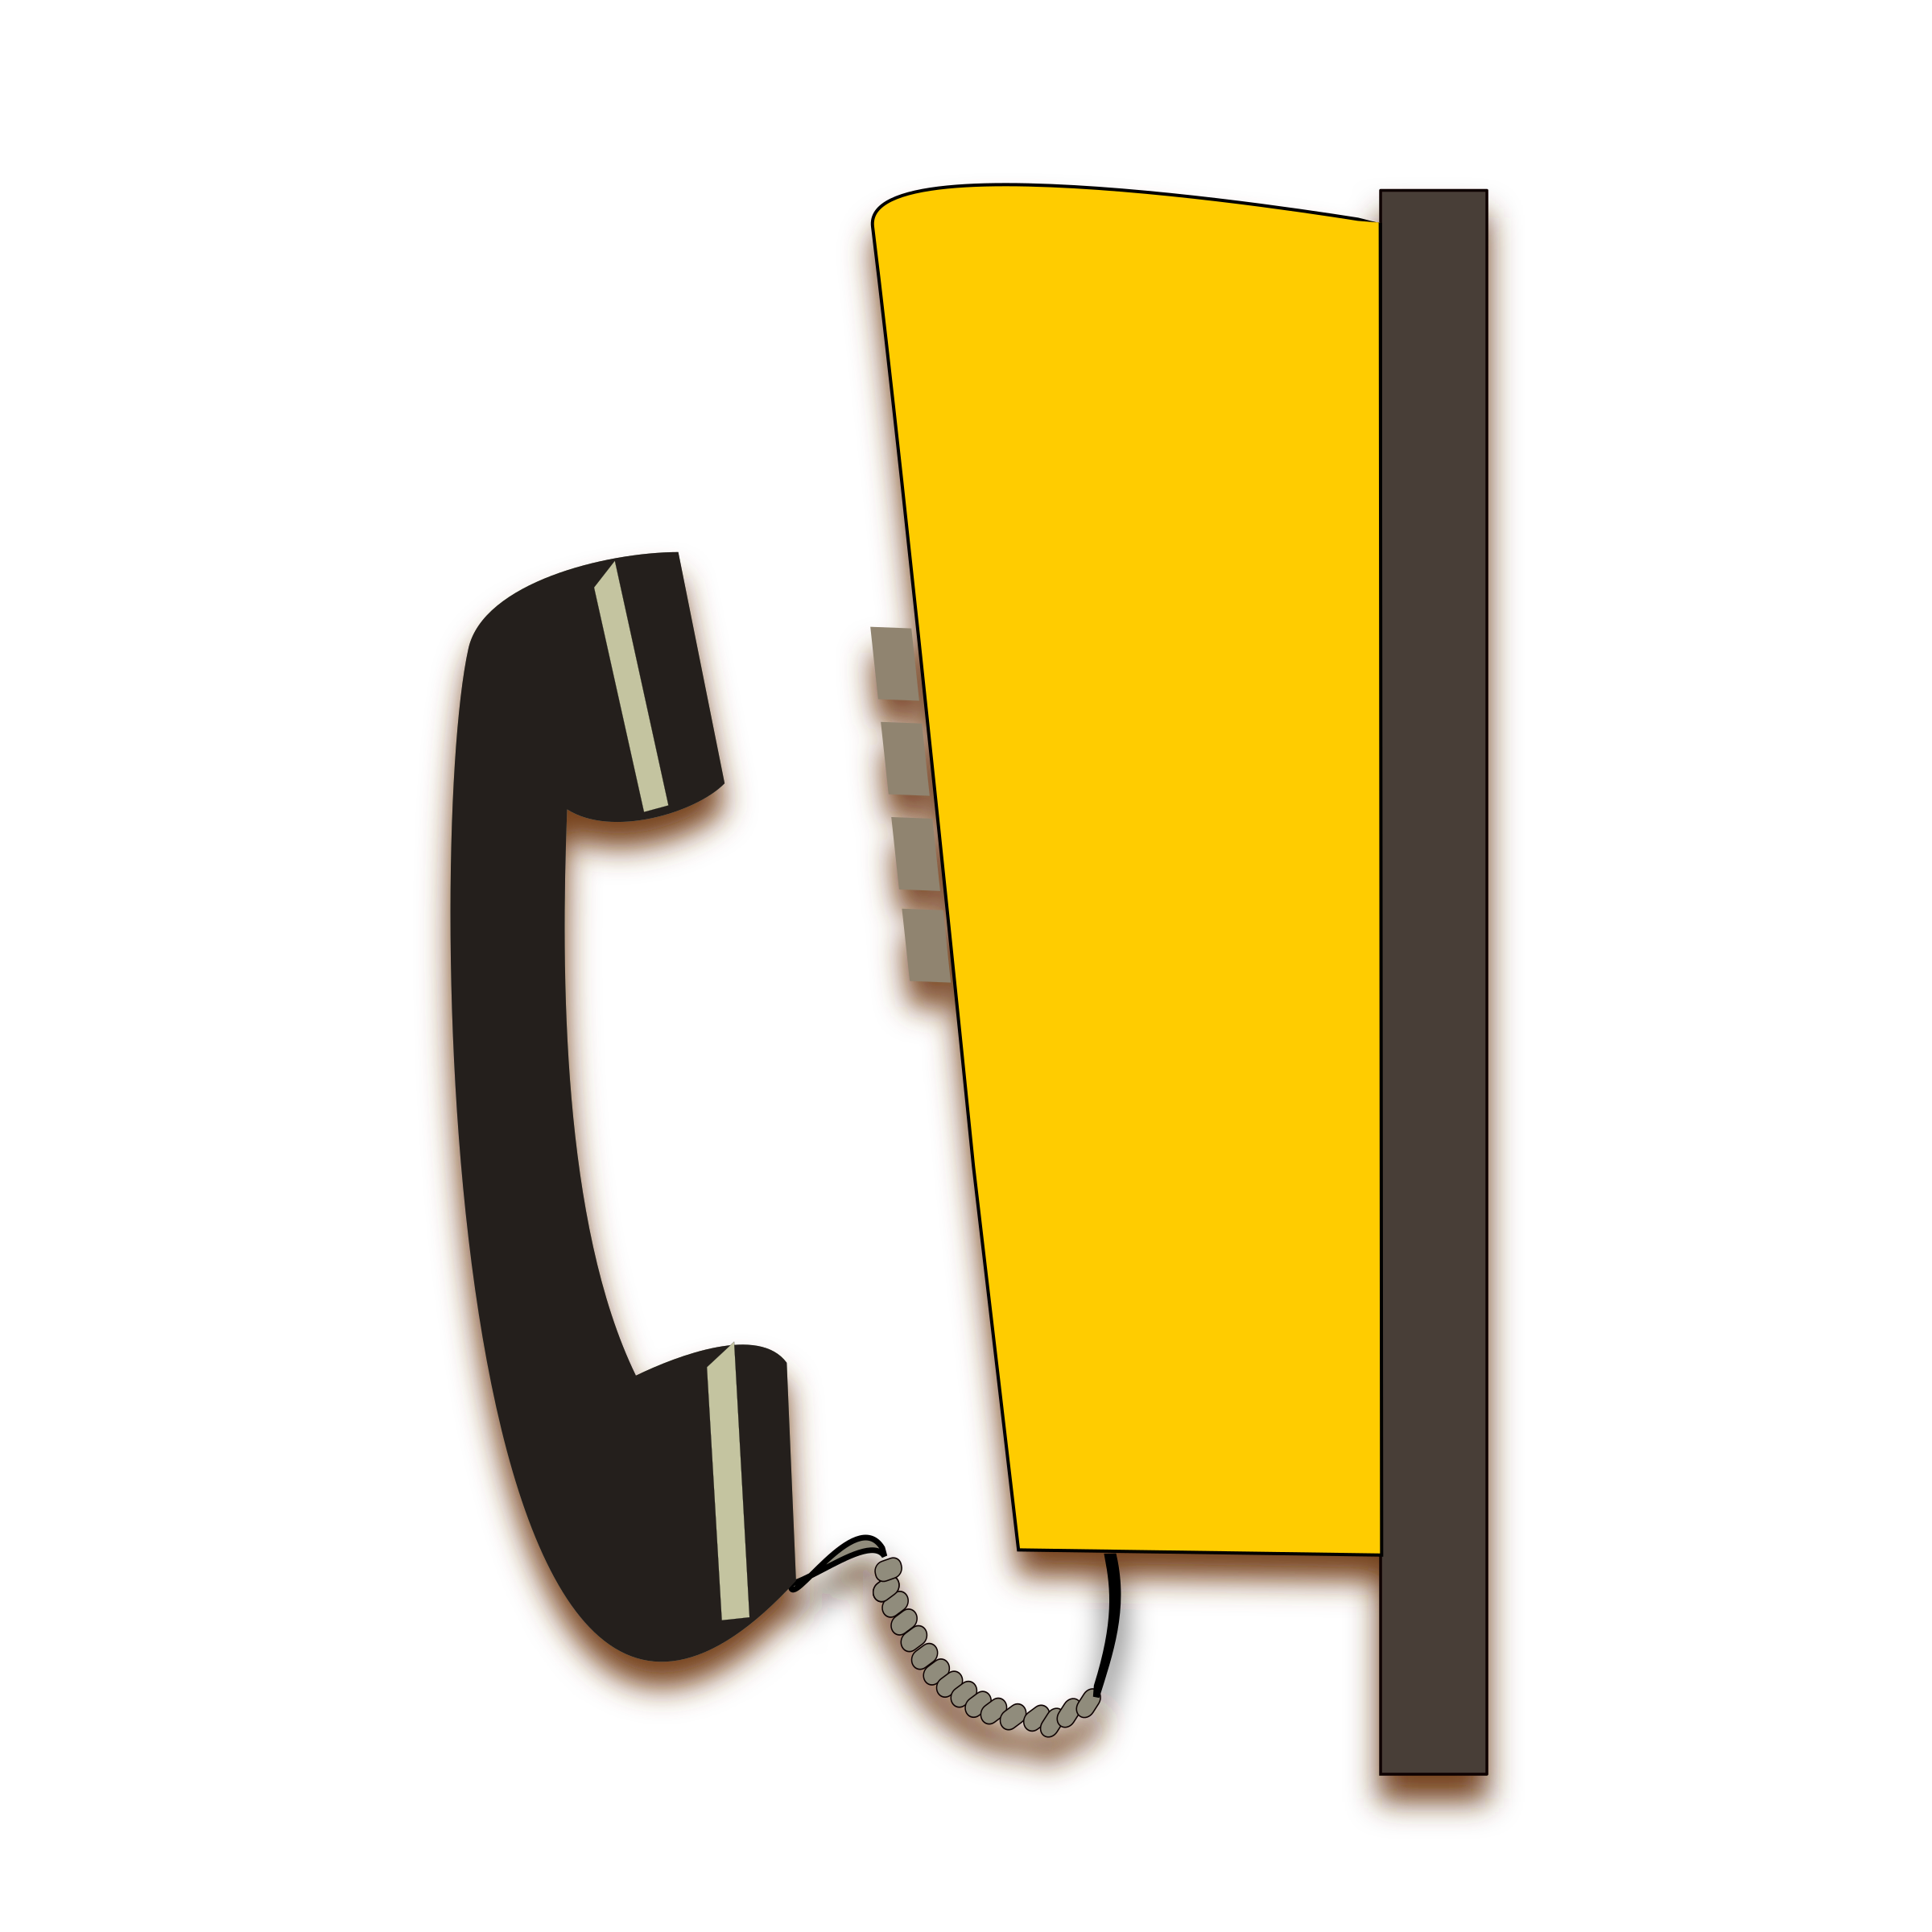 vector transparent library Public big image png. Telephone clipart vector.